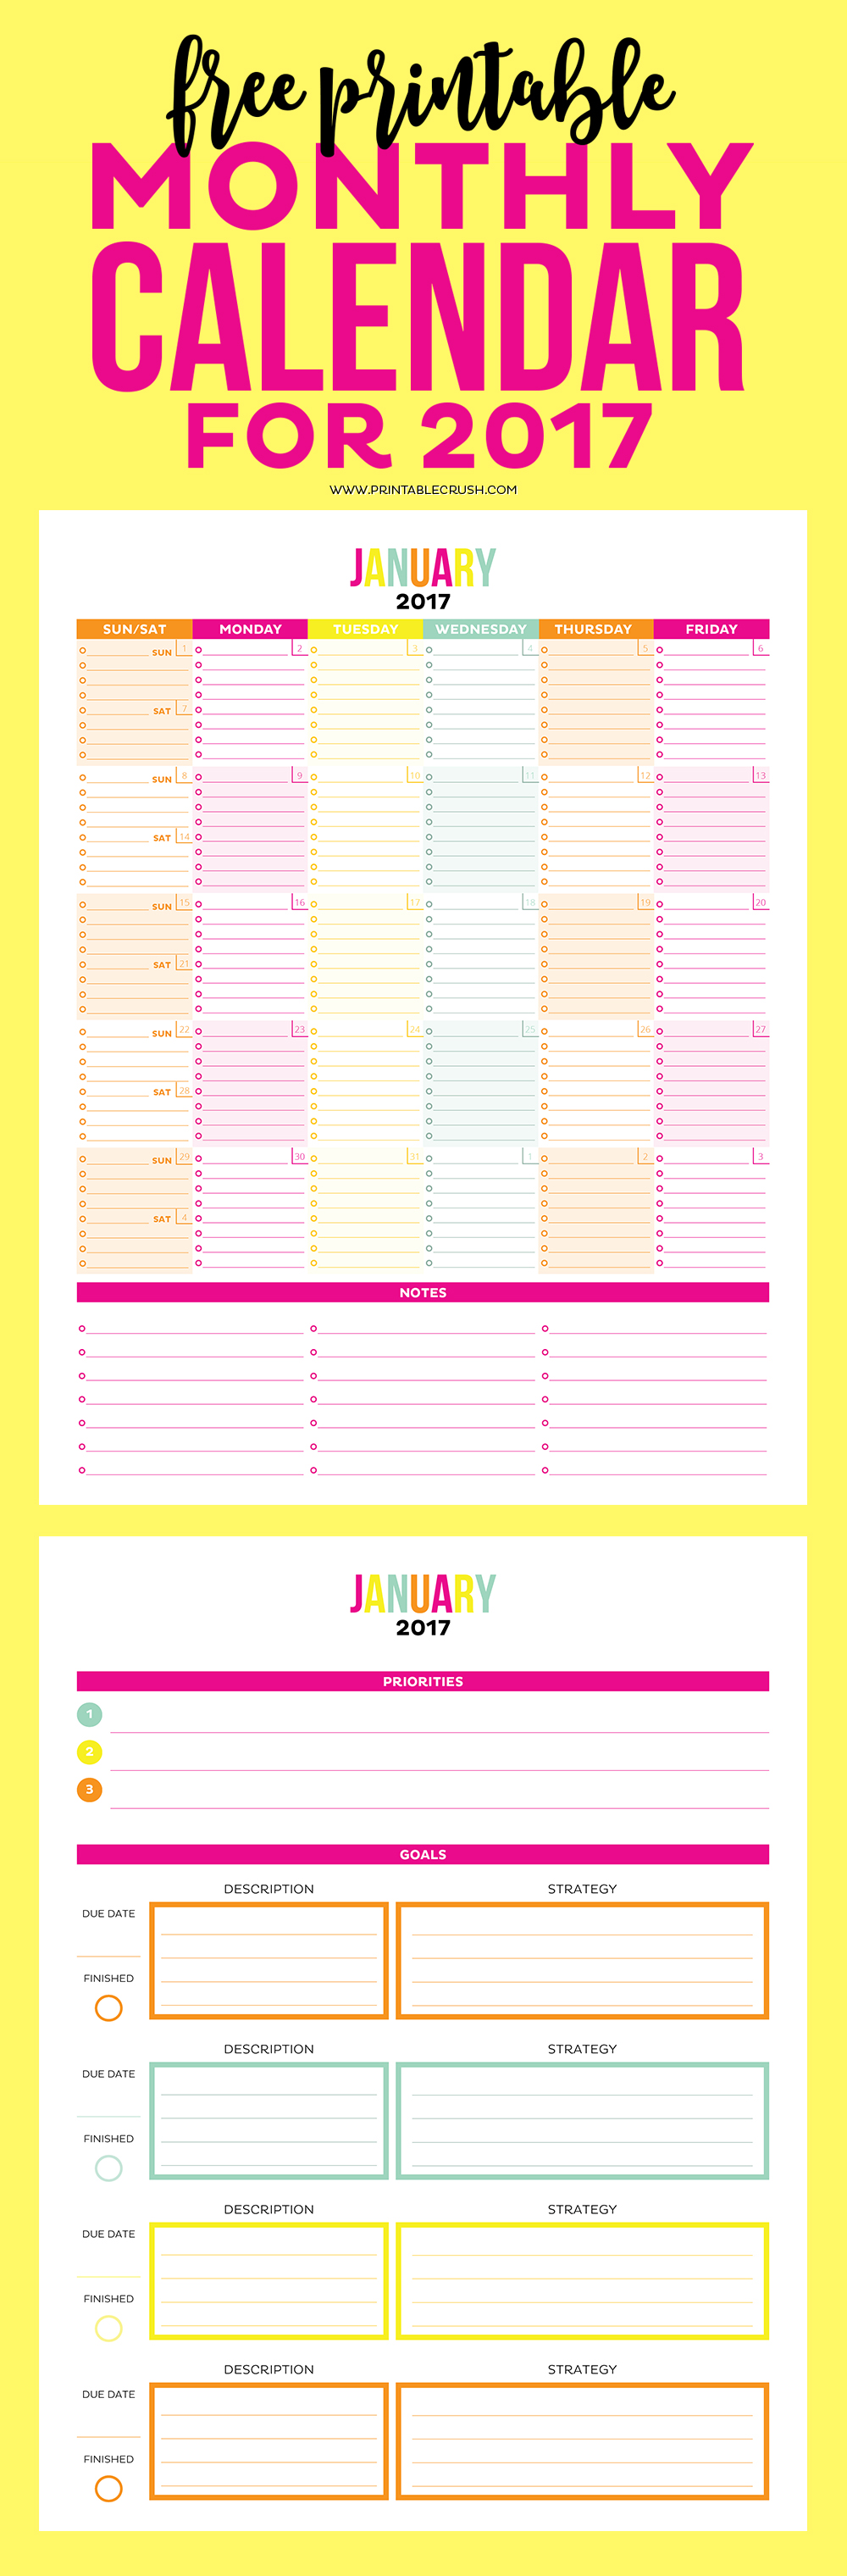 Weekly Calendar With Notes : Printable monthly calendar and goal sheets